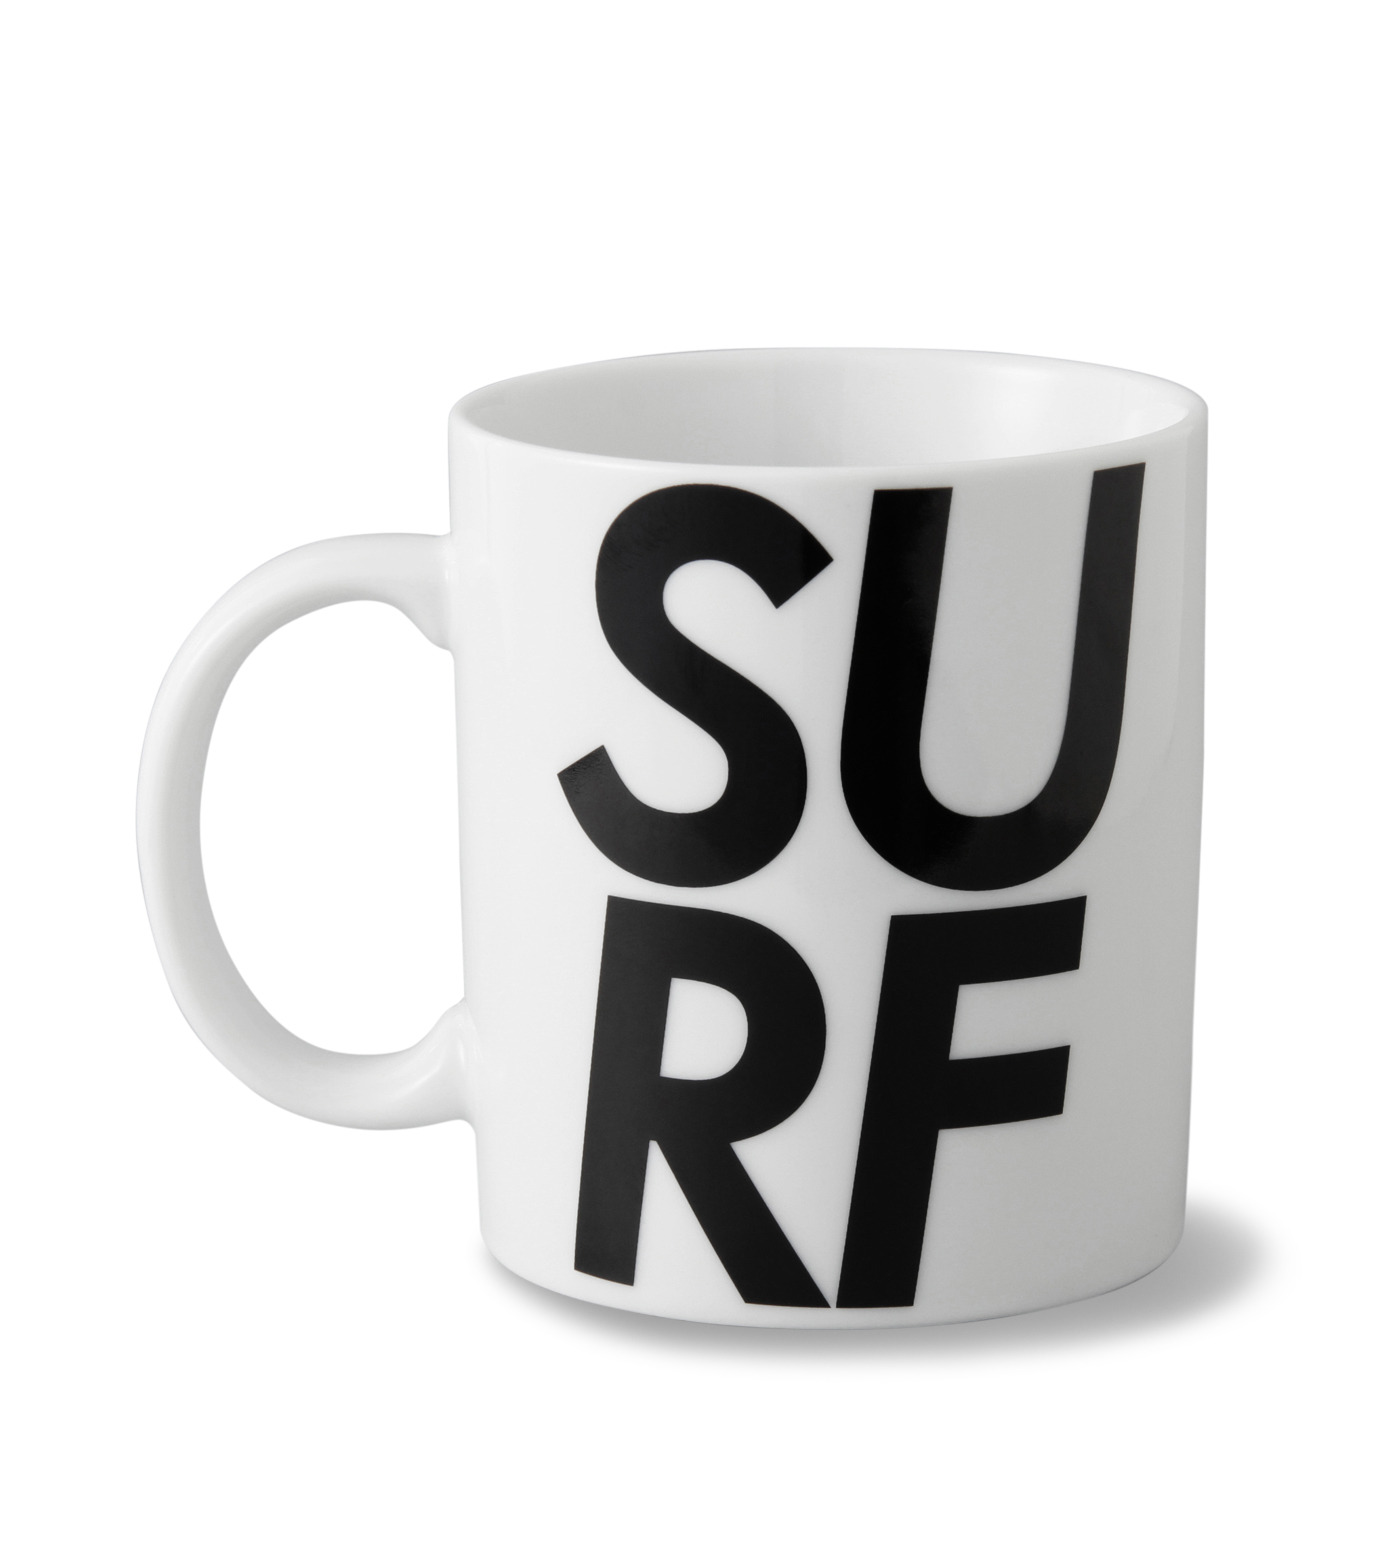 HEY YOU !(ヘイユウ)のSURF MUG CUP-WHITE(キッチン/kitchen)-SURF-MAG-4 拡大詳細画像1